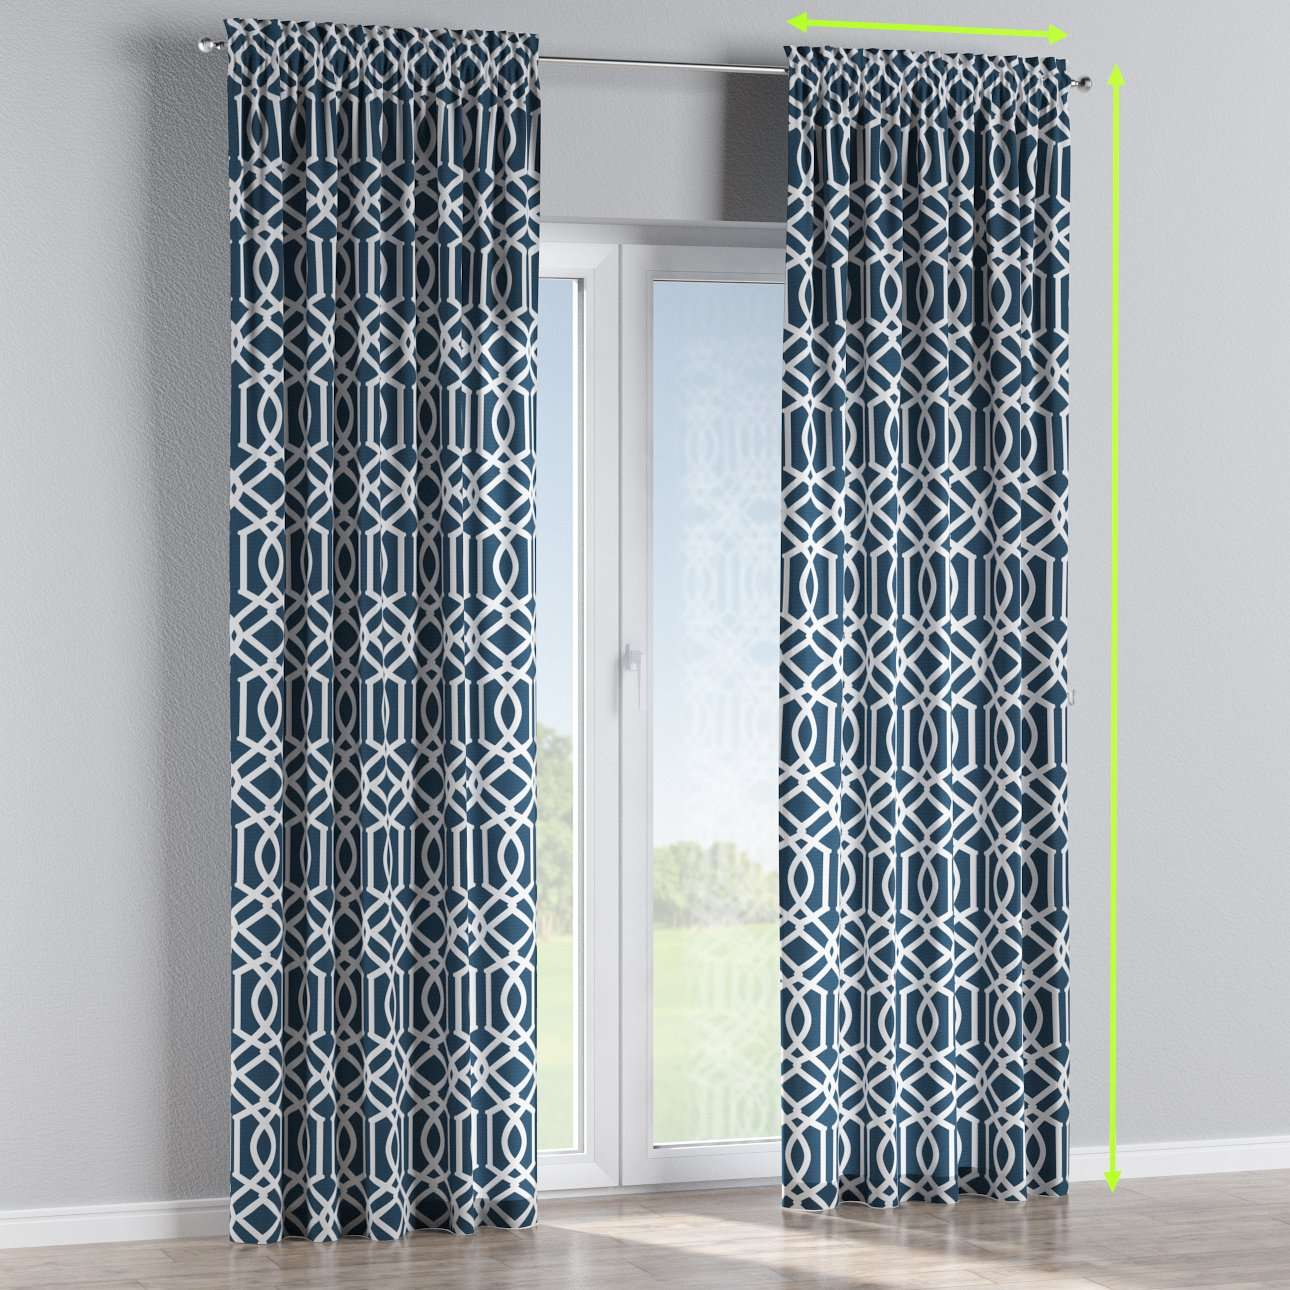 Slot and frill curtains in collection Comic Book & Geo Prints, fabric: 135-10